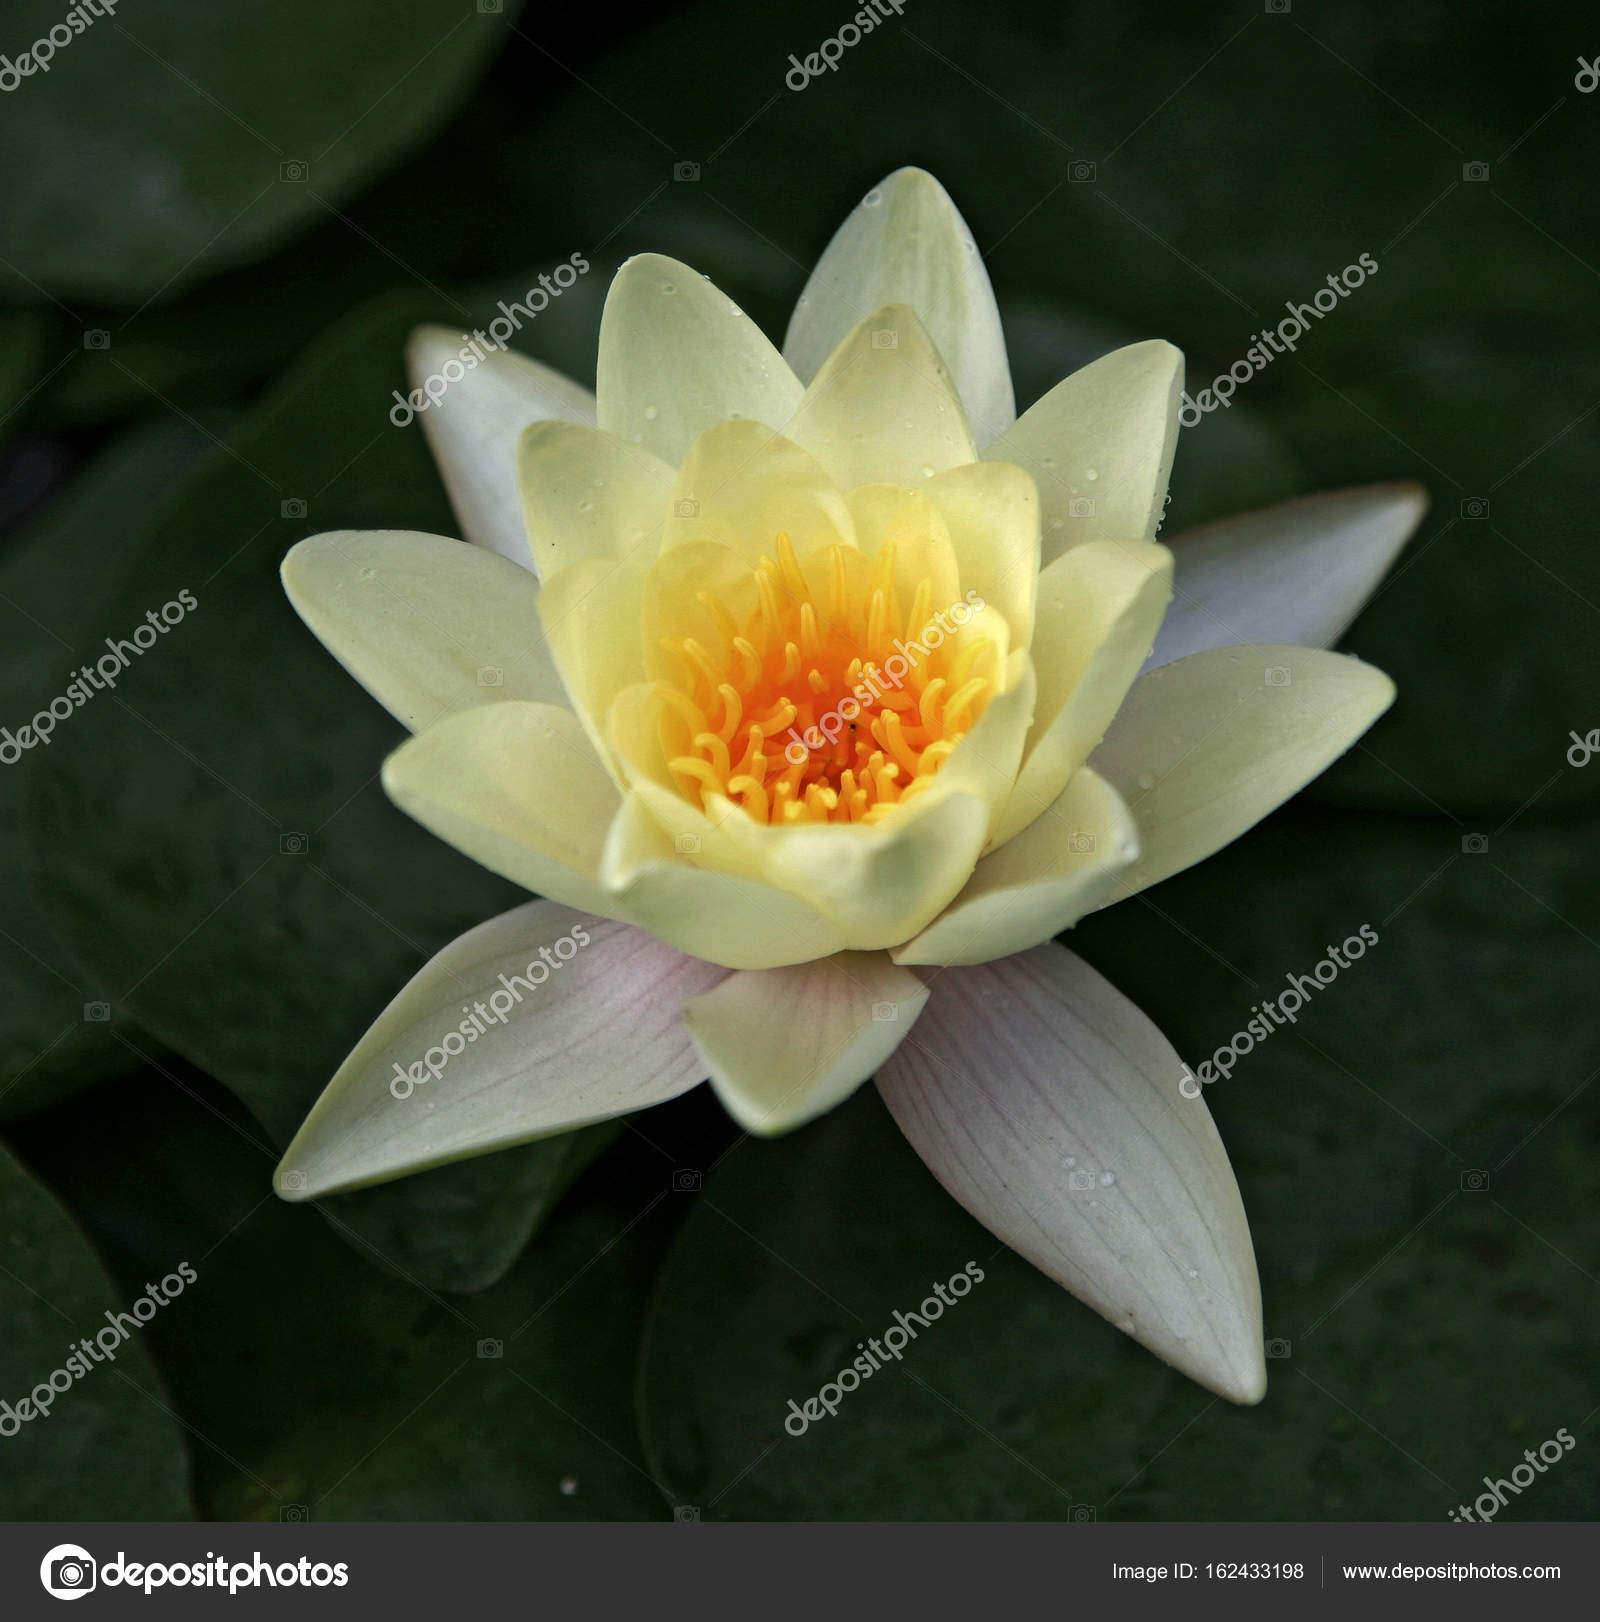 Isolated lotus flower stock photo sahmay 162433198 isolated lotus flower stock photo izmirmasajfo